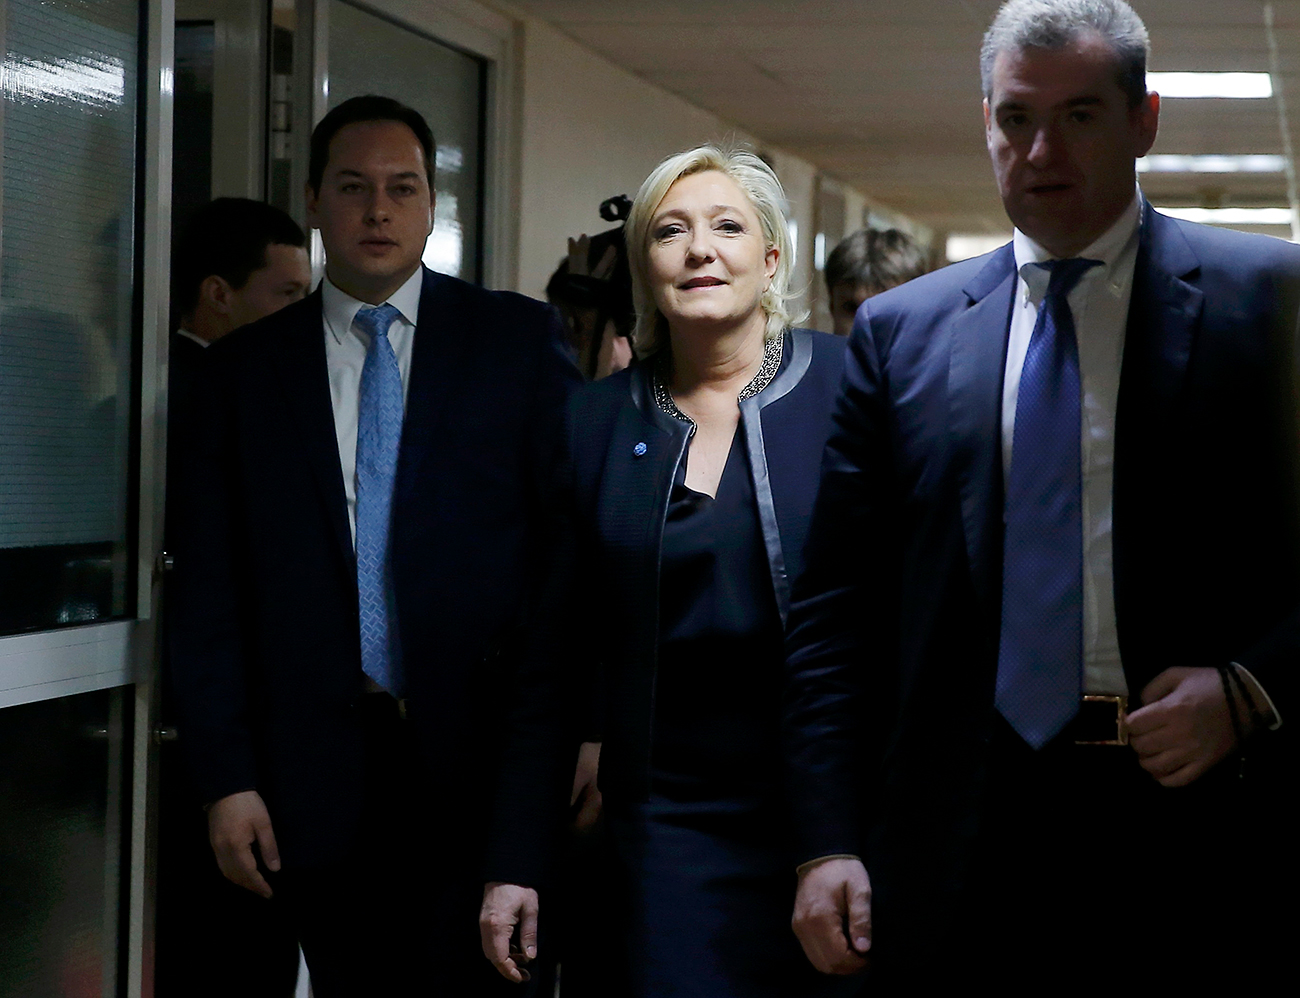 Candidate for the 2017 presidential election Marine Le Pen, French National Front political party leader, arrives for a meeting with members of the State Duma, the Russian lower house of parliament's international affairs committee, in Moscow, March 24, 2017.